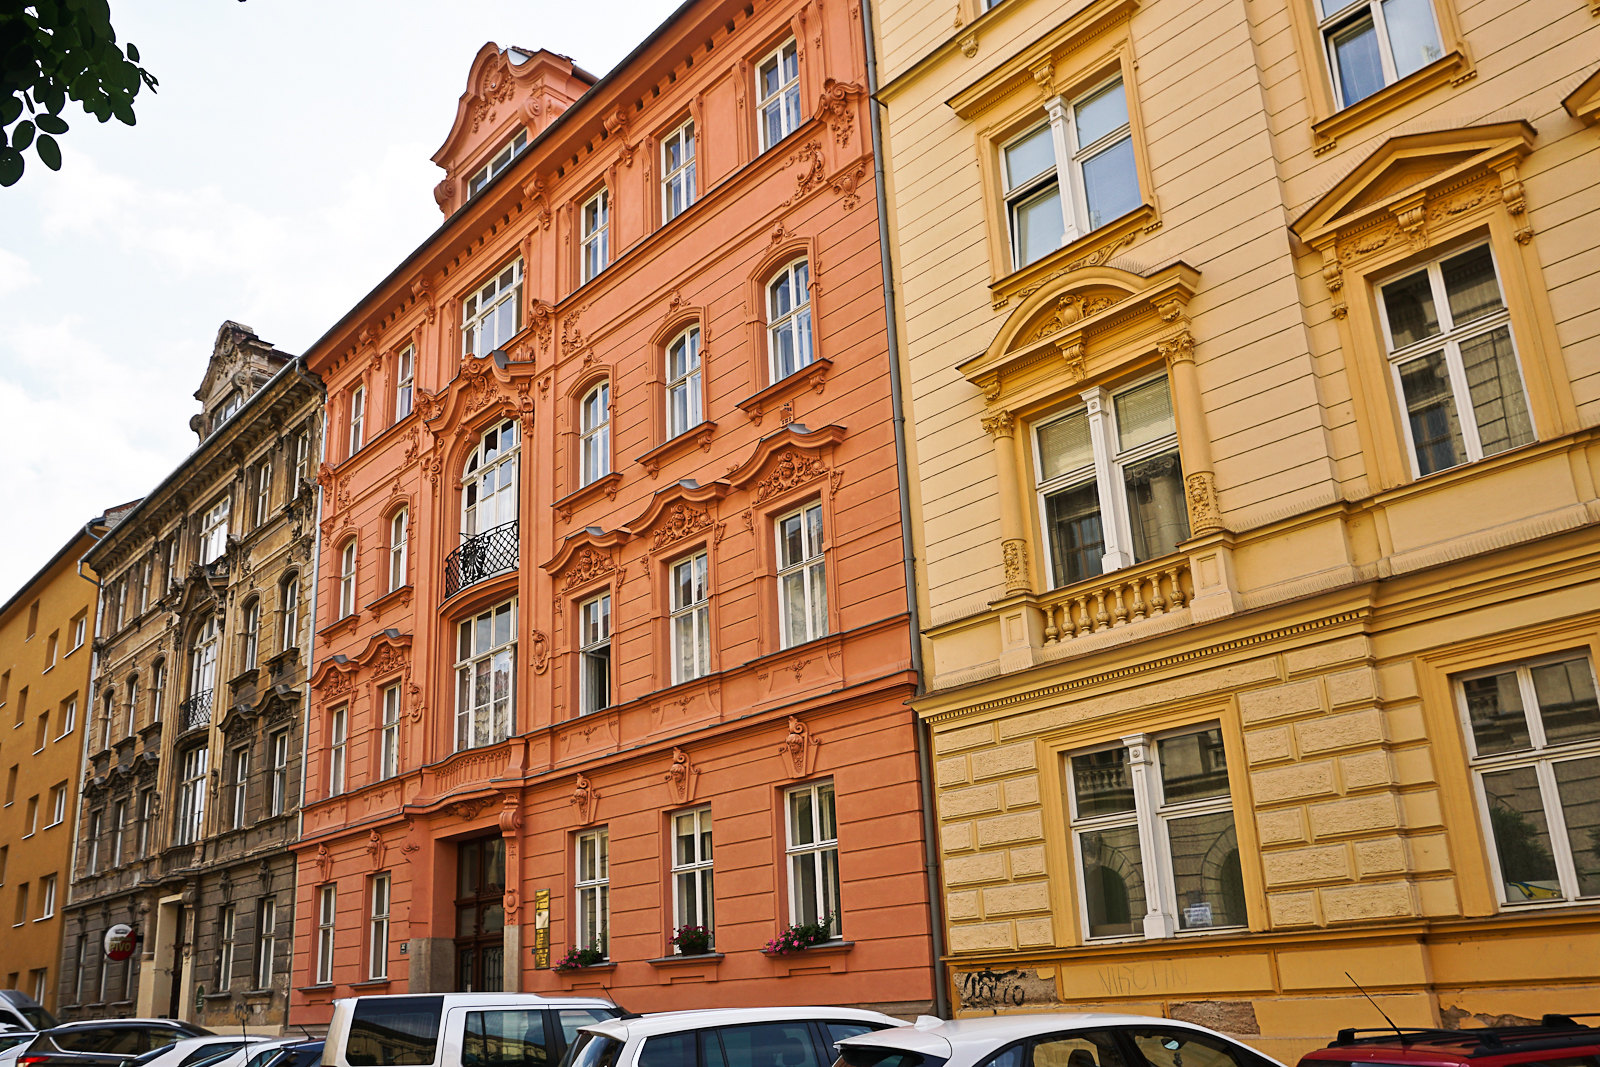 Painted Brno apartment buildings